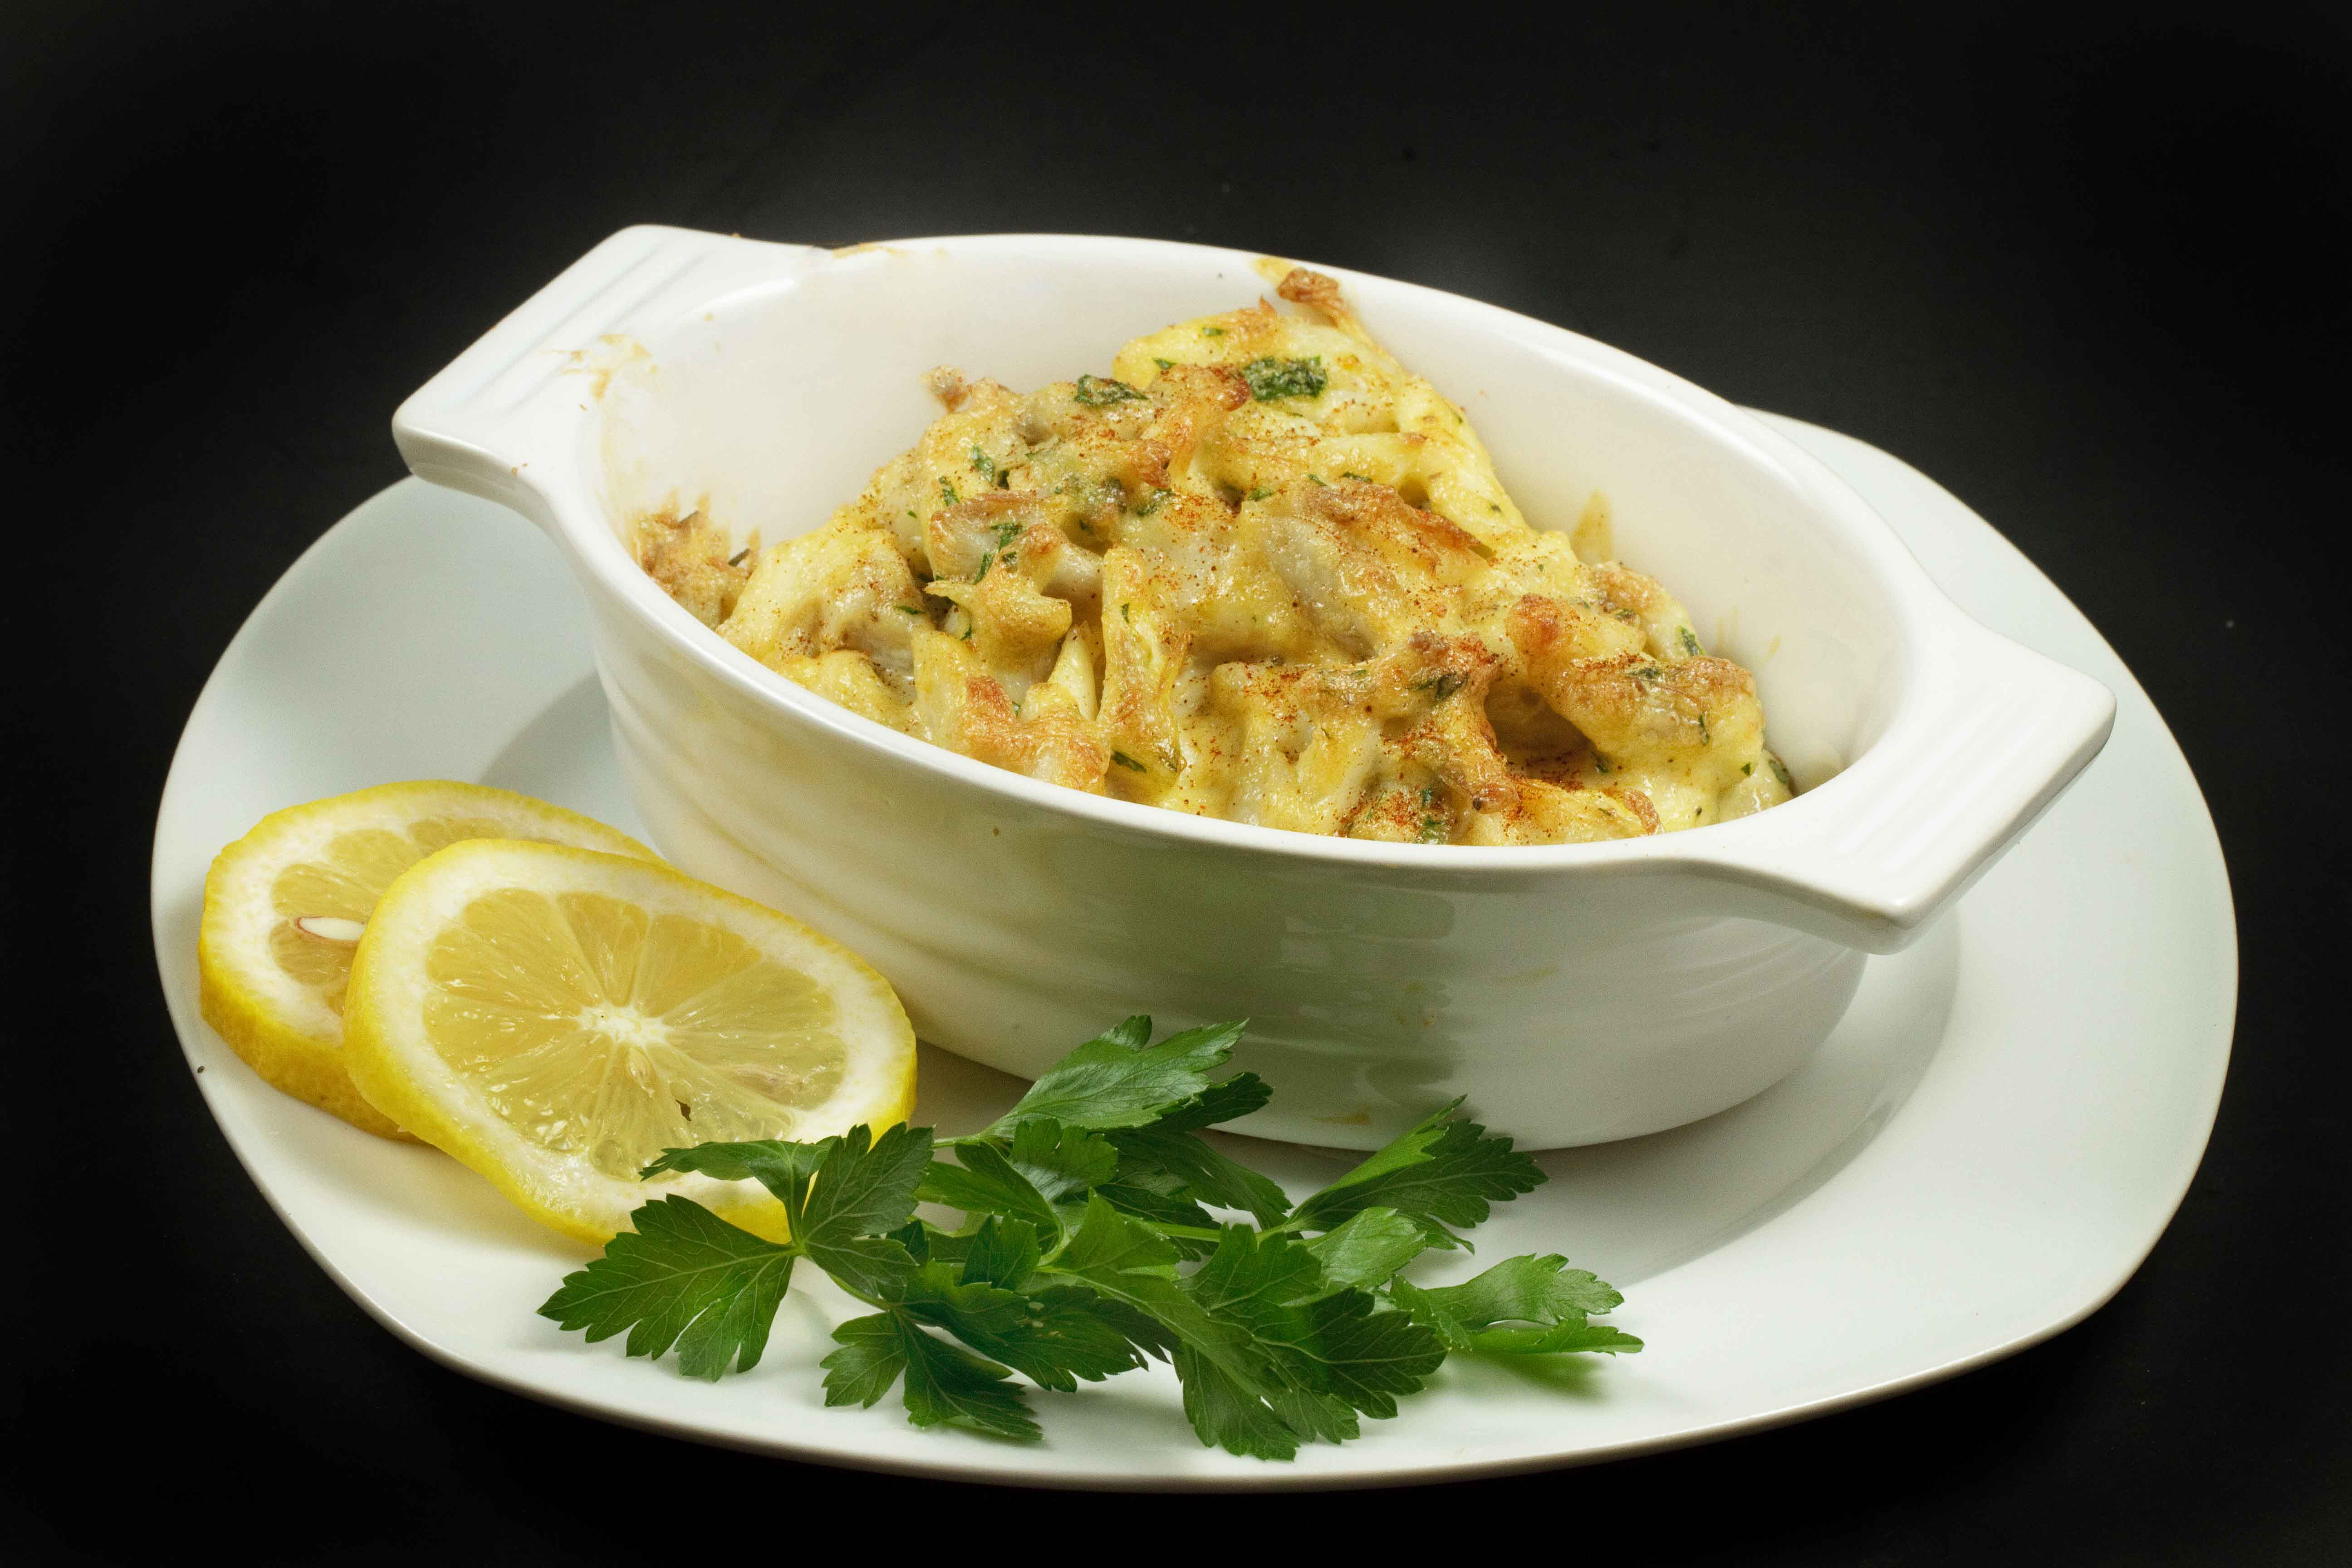 Maryland Jumbo Lump Crab Imperial Recipe - A Timeless Classic